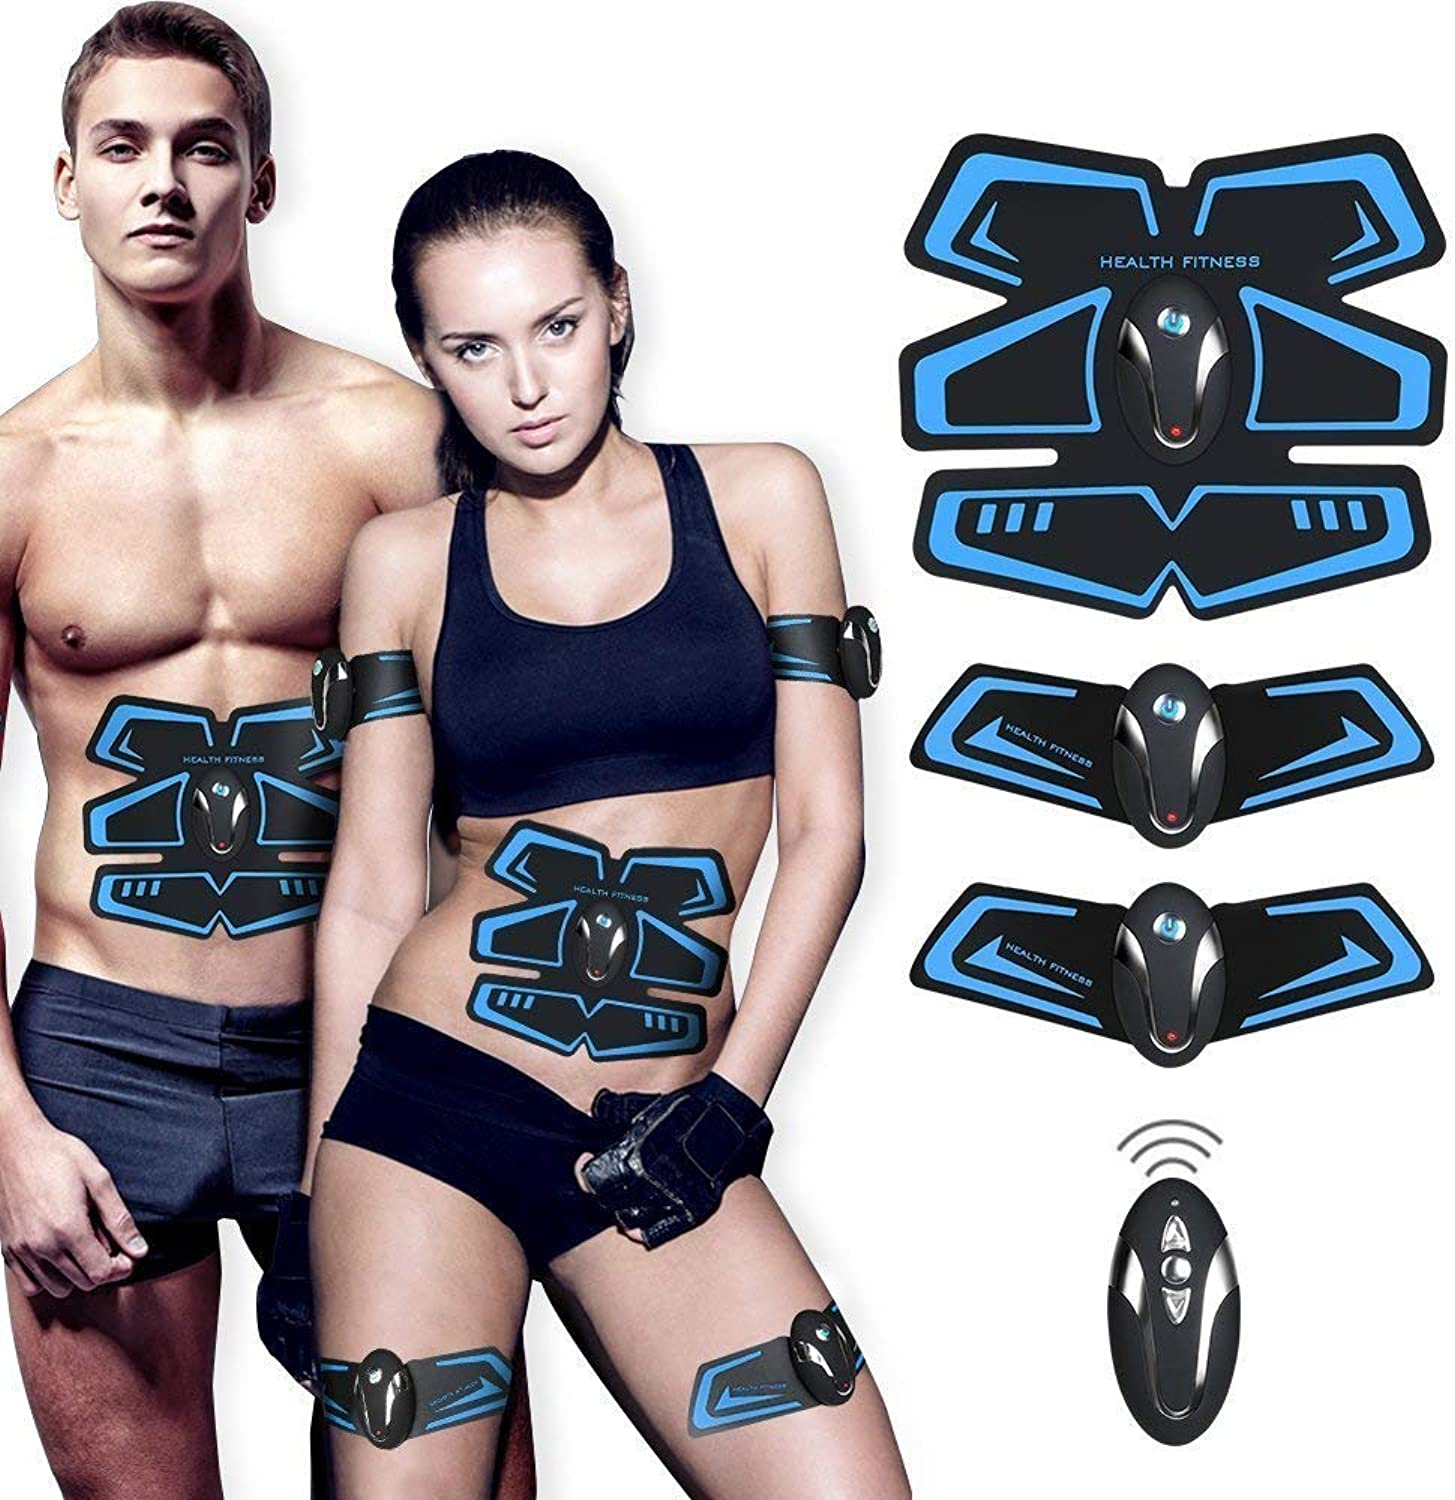 AILIDA ABS Muscle Toning Belts, EMS Muscle Trainer with Remote Control  USB Rechargeable Abdominal with Rhythm & Soft Impulse for Men and Women